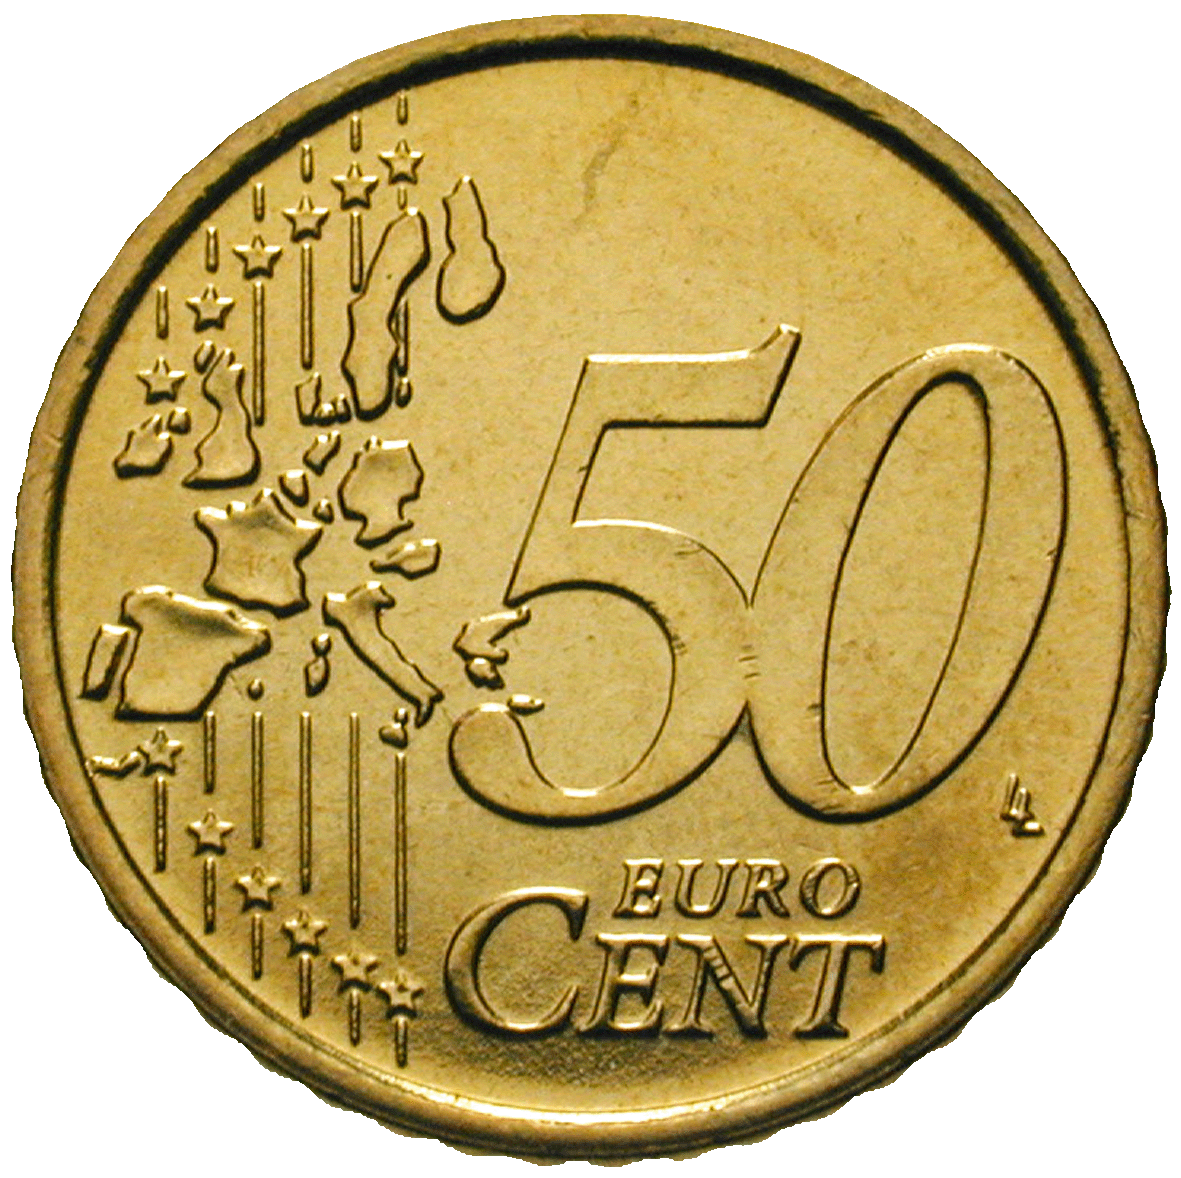 Republik Italien, 50 Eurocent 2002 (reverse)